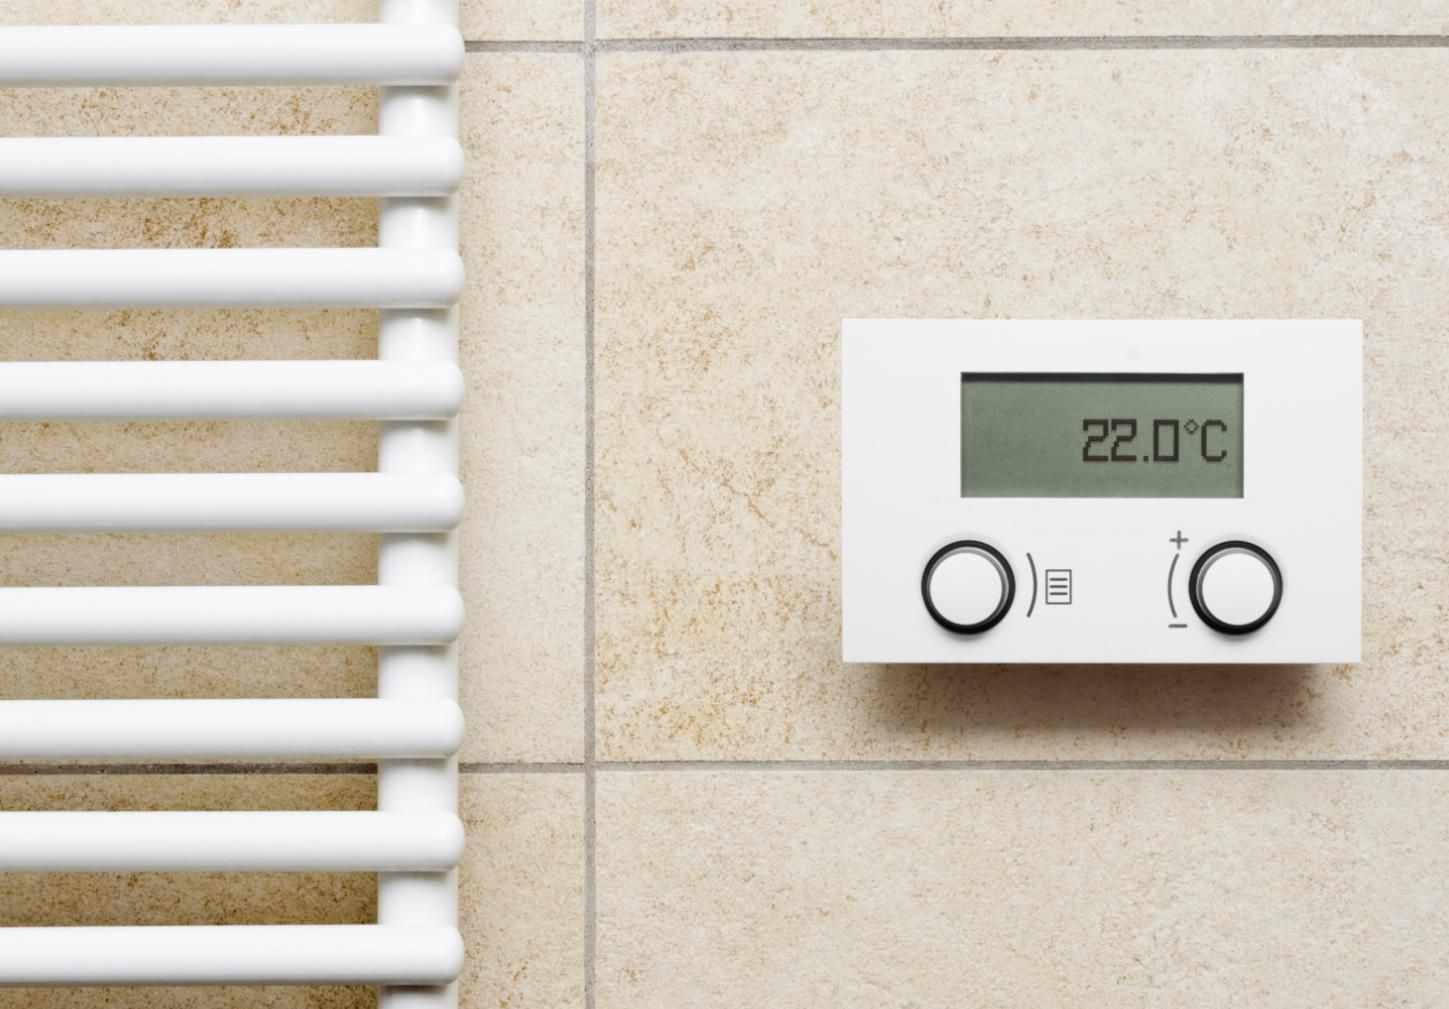 Understanding The Terminal Letters On A Thermostat Empire Wall Heater Wiring